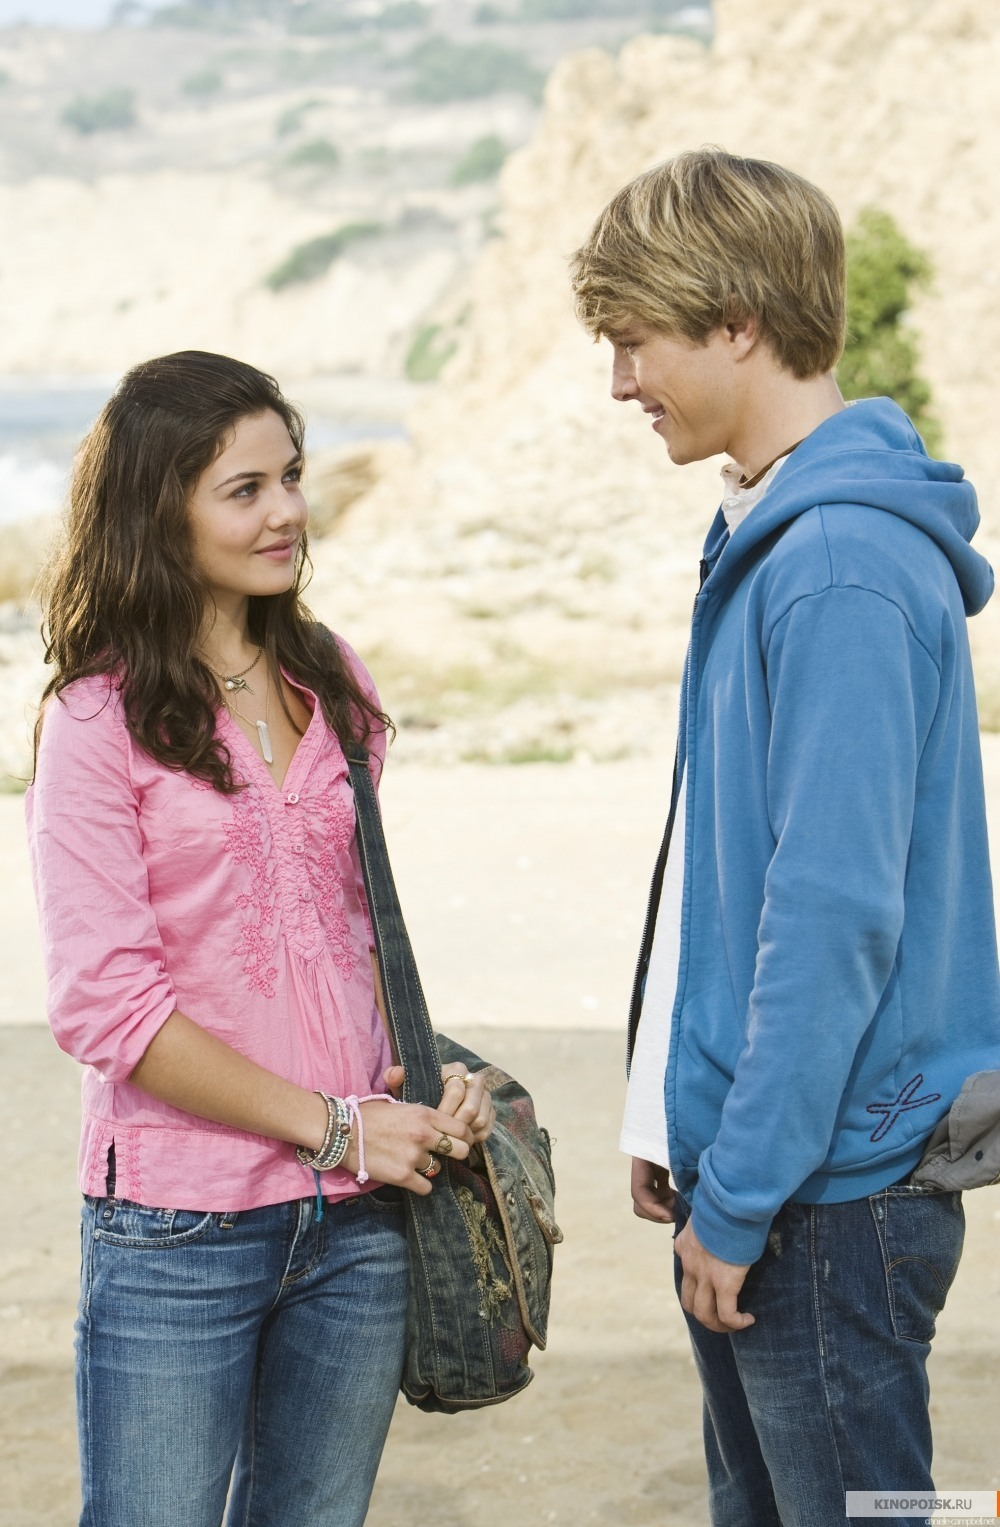 http://images4.fanpop.com/image/photos/18300000/Sterling-Knight-sterling-knight-18379068-1000-1527.jpg